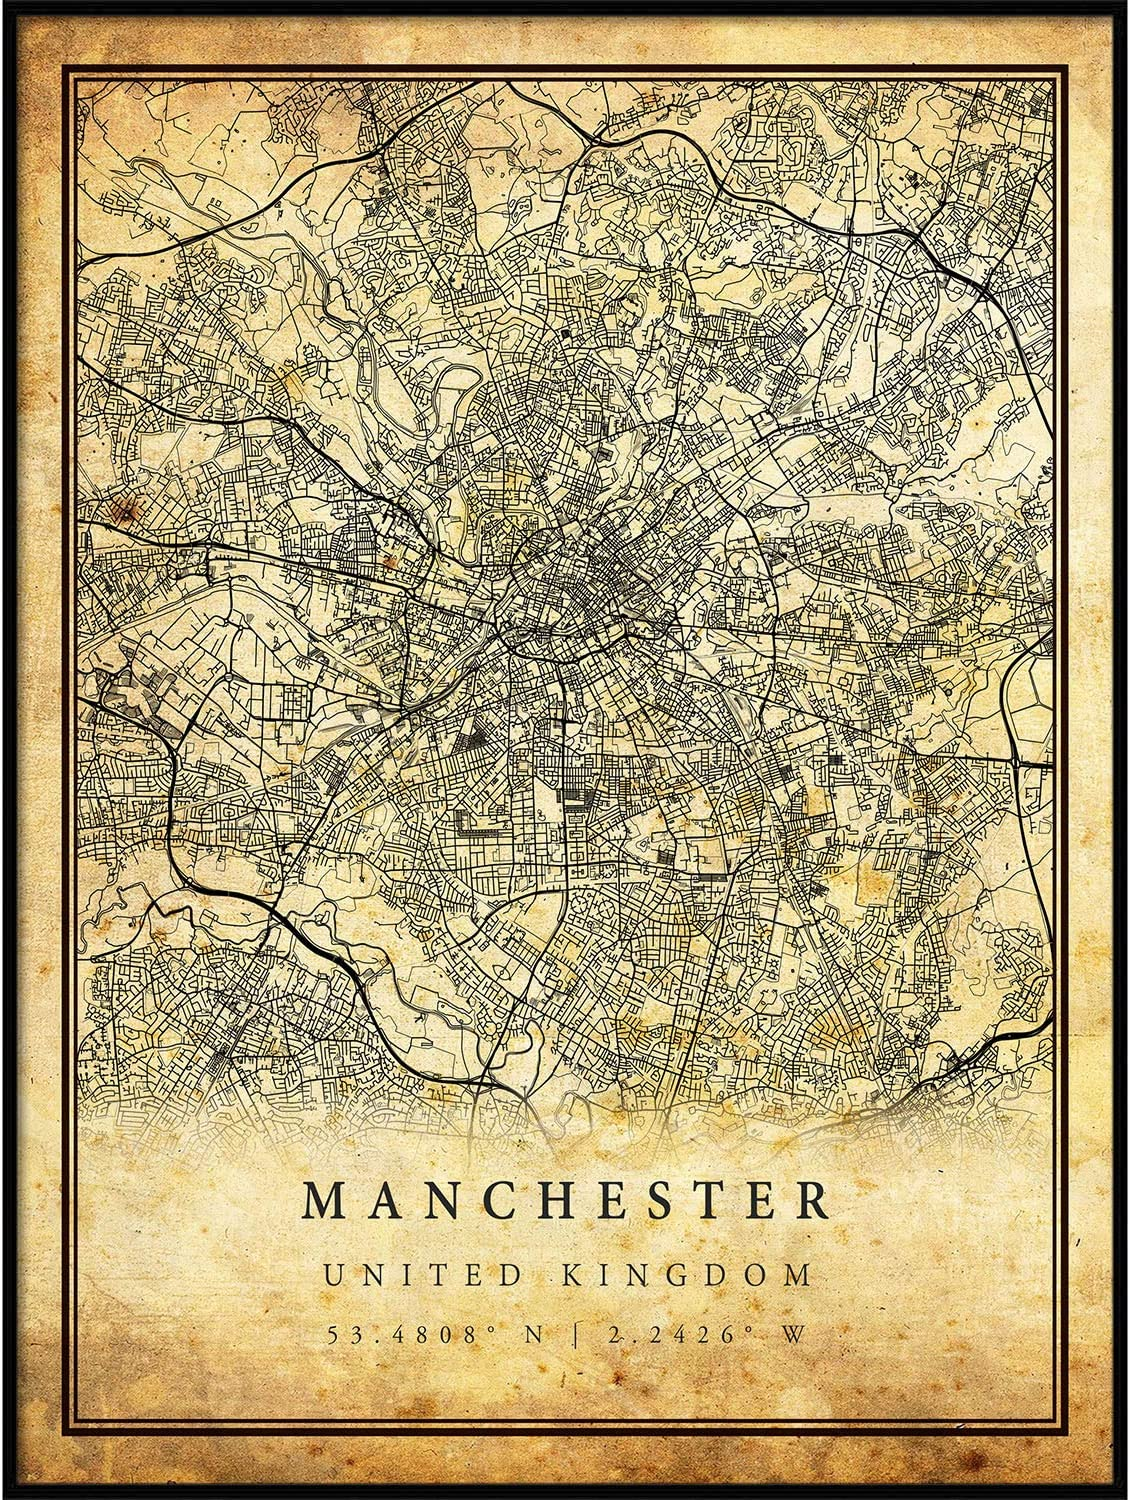 Manchester map Vintage Style Poster Print | Old City Artwork Prints | Antique Style Home Decor | United Kingdom Wall Art Gift | map walll Art 18x24